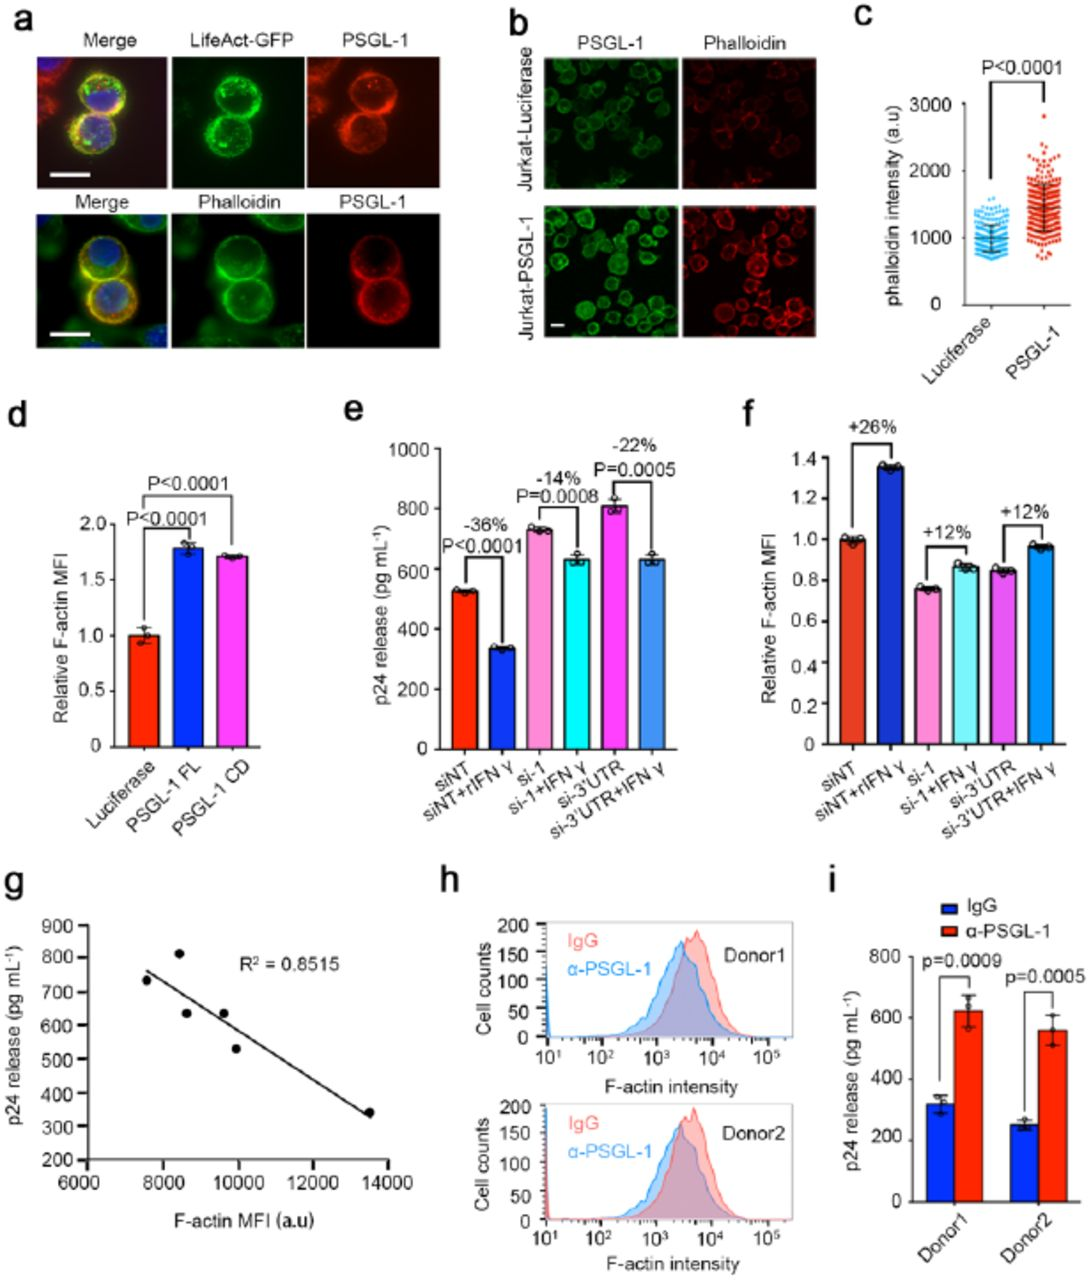 PSGL-1 stabilizes cellular F-actin to restrict HIV infection. a , Immunofluorescence staining of PSGL-1 in MAGI cells overexpressing PSGL-1 using anti-PSGL-1 antibody. Upper panel: PSGL-1 (red) colocalizes with LifeAct-GFP (green), which binds F-actin; Lower panel: PSGL-1 (red) colocalizes with phalloidin (green). Scale bar: 10 µm. b-c , Immunofluorescence staining of PSGL-1 using anti-PSGL-1 antibody (green) and phalloidin (red) in Jurkat T cells overexpressing luciferase or PSGL-1. Scale bar: 5 µm. The phalloidin intensity of cells in each group were shown in ( c ). d , Jurkat T cells overexpressing luciferase, PSGL-1 or PSGL-1 CD (cytoplasmic domain) alone were stained with phalloidin and analyzed with FACS. Relative MFIs were normalized to luciferase group. MFI: Mean Fluorescence intensity. N = 3. e-f , Activated primary CD4+ T cells were treated with IFN-γ or mock-treated for 12 h before being electroporated with two different siRNAs targeting PSGL-1 or non-targeting control siRNA (siNT) for 48 h. The cells were then either fixed for phalloidin staining and FACS quantification ( f ) or infected with HIV-1 NL4-3 for 72h before the supernatant being collected for p24 ELISA ( e ). N = 3 for ( e-f ). g , Correlation between cellular F-actin intensities and HIV-1 infection rates in ( e-f ). h-i , Activated primary CD4+ T cells from two healthy donors were incubated with PSGL-1 antibody or IgG for 2 h before being fixed for phalloidin staining ( h ) or infected with HIV-1 NL4-3 for 72 h before the supernatant being collected for p24 measurement ( i ). N = 3.